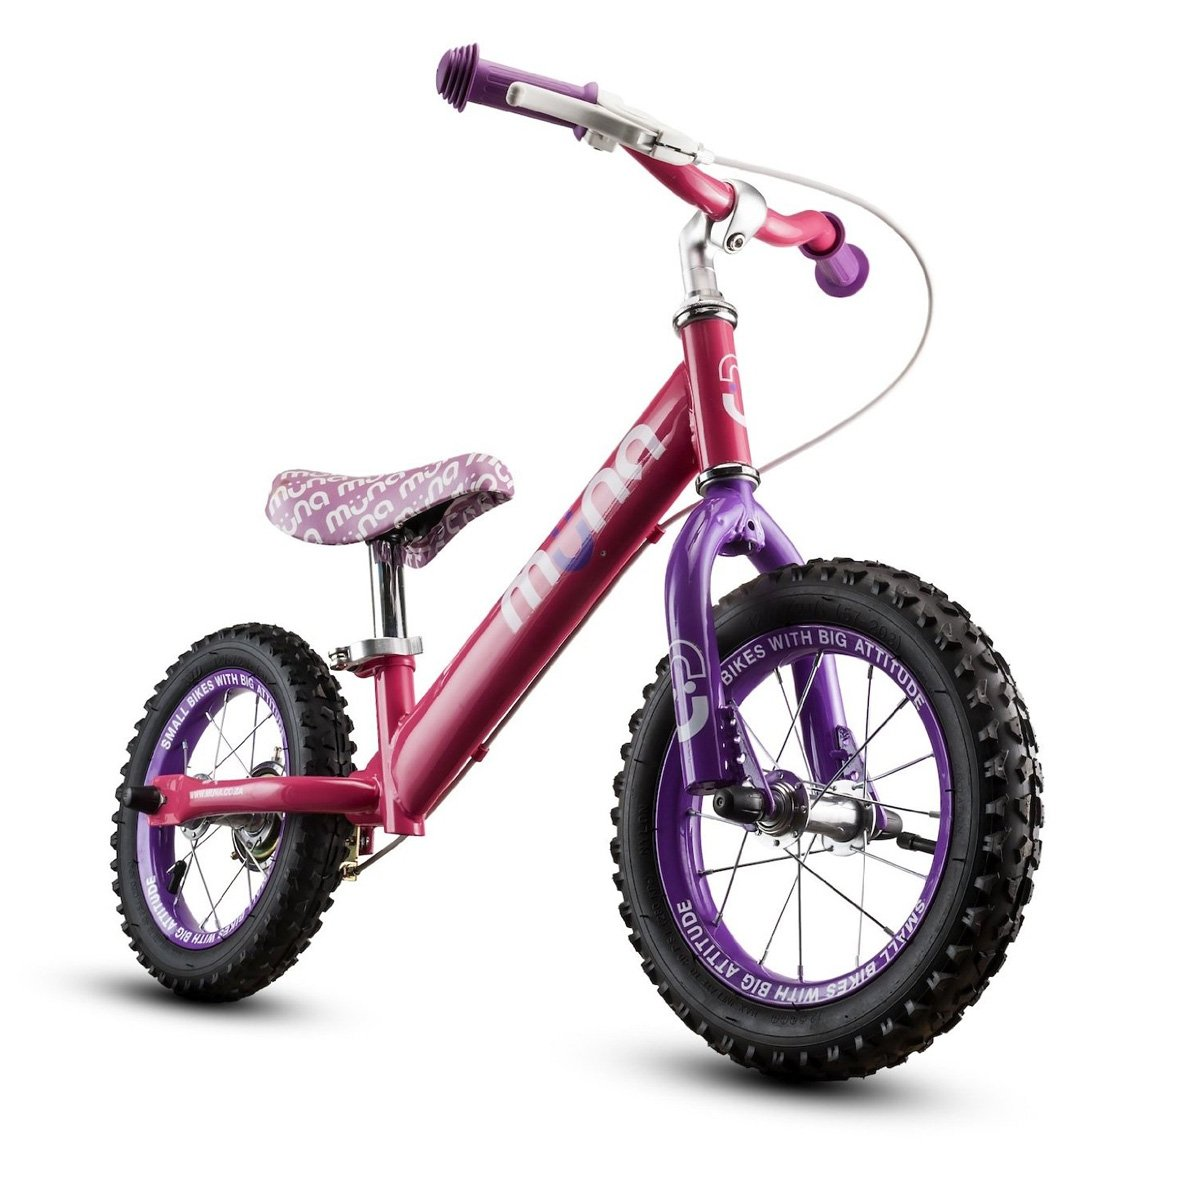 Muna Balance Bike 12 Wheels w/ Rear Hand Brake Muna Pinkie Balance Bicycle 12 Getting Fit MUNA430